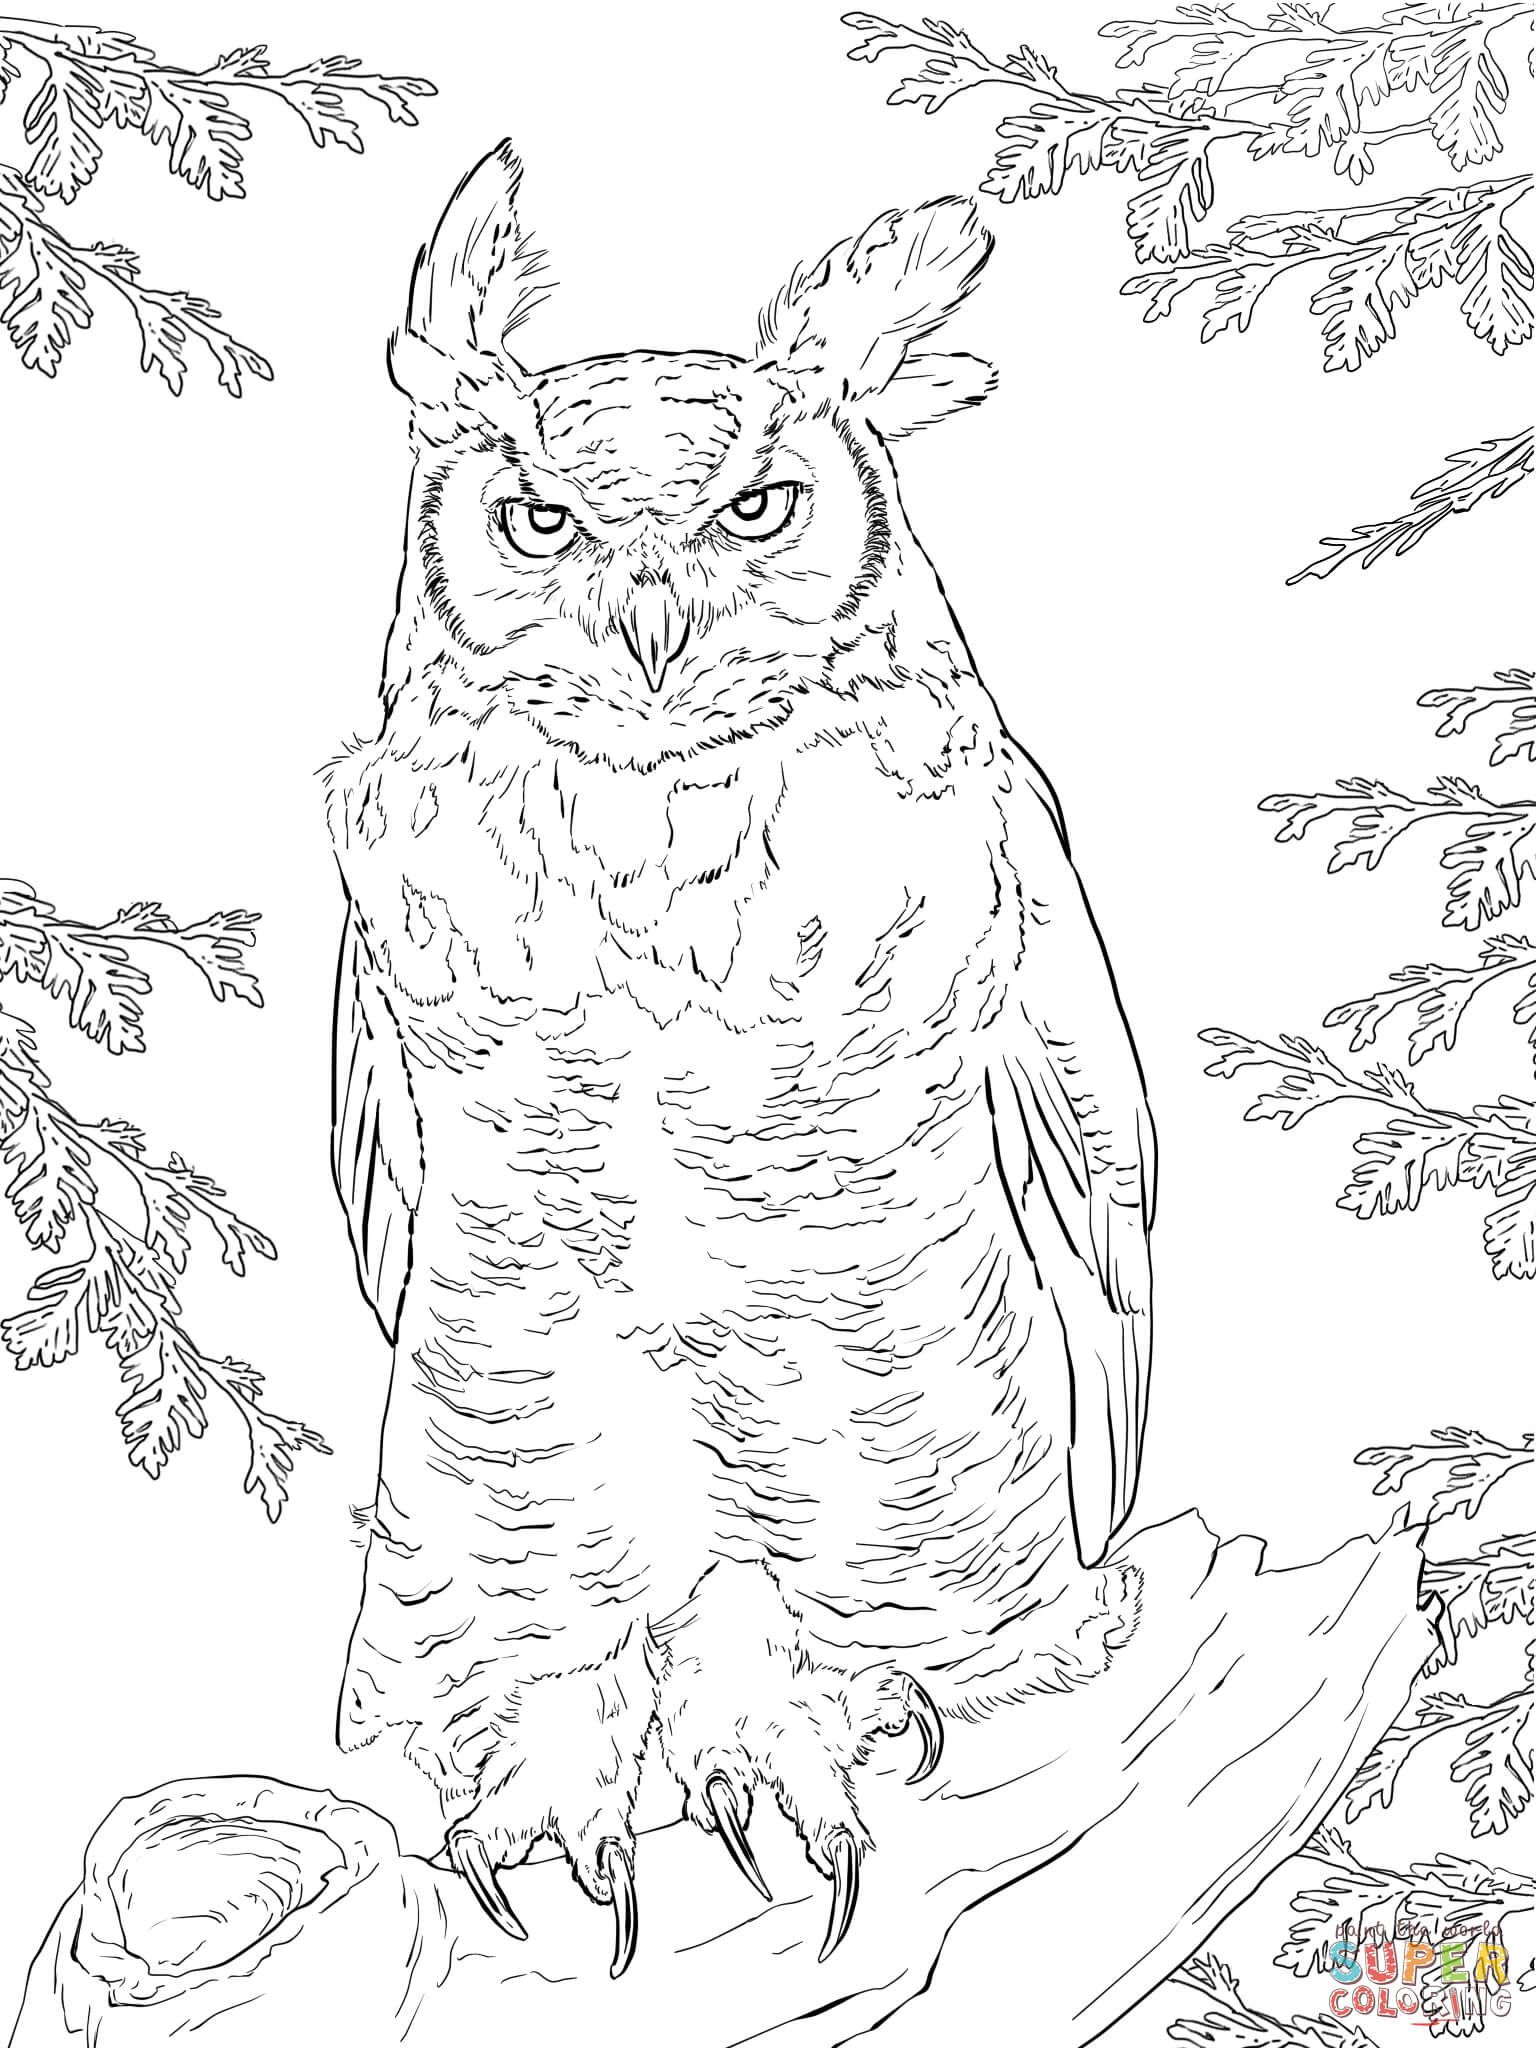 Pin by Małgorzata Kitka on Coloring pages - Owls | Pinterest | Owl